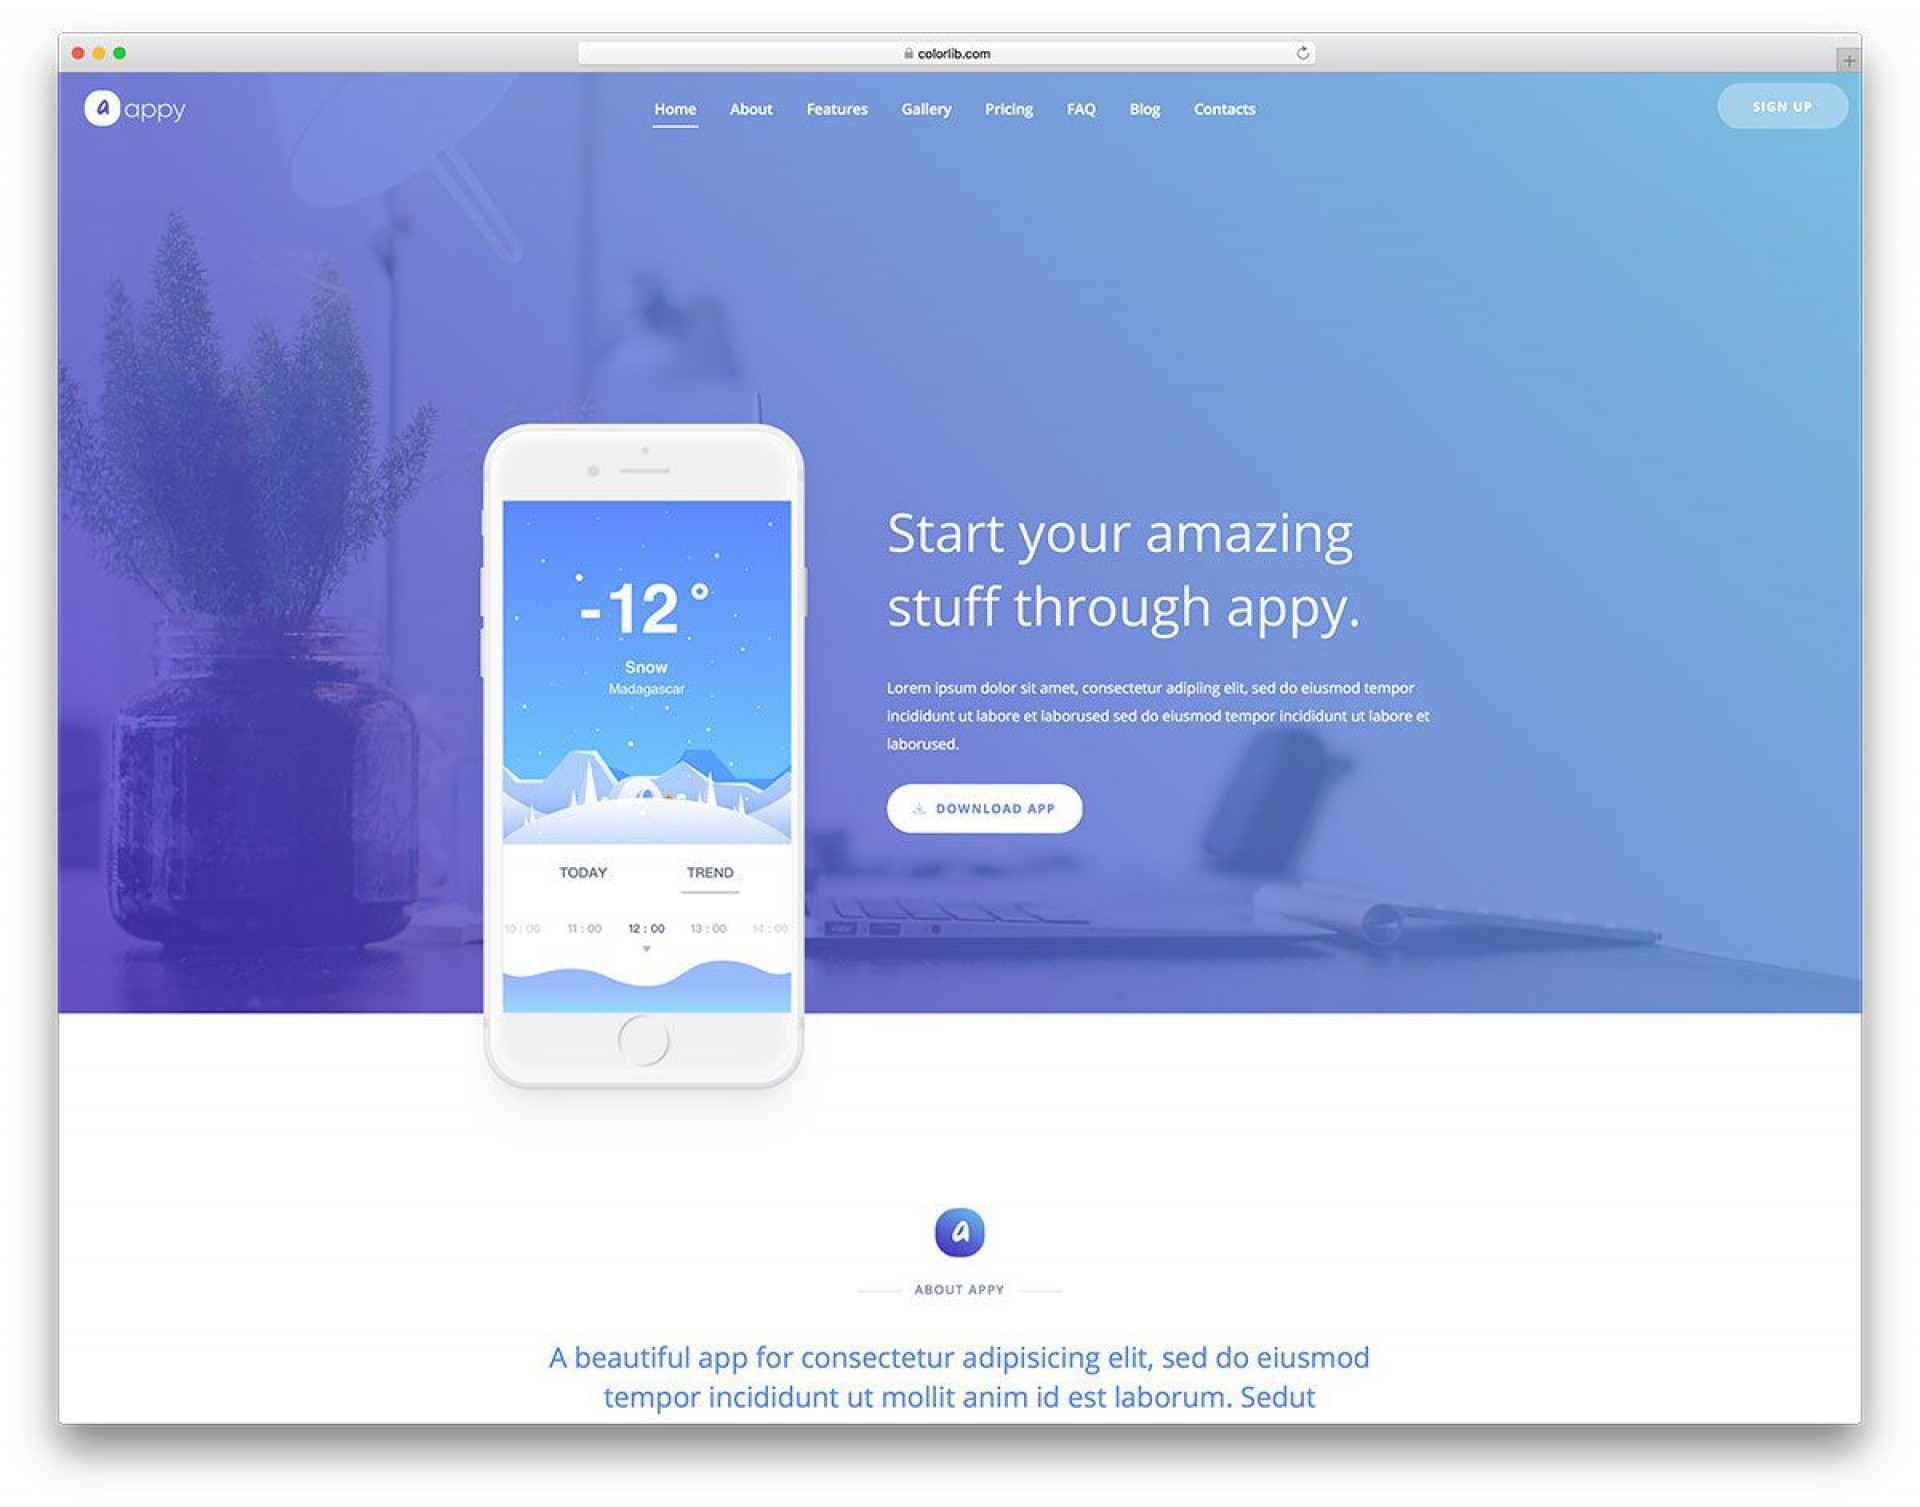 004 Awful Free Simple Web Page Template Inspiration  Html Website Cs1920